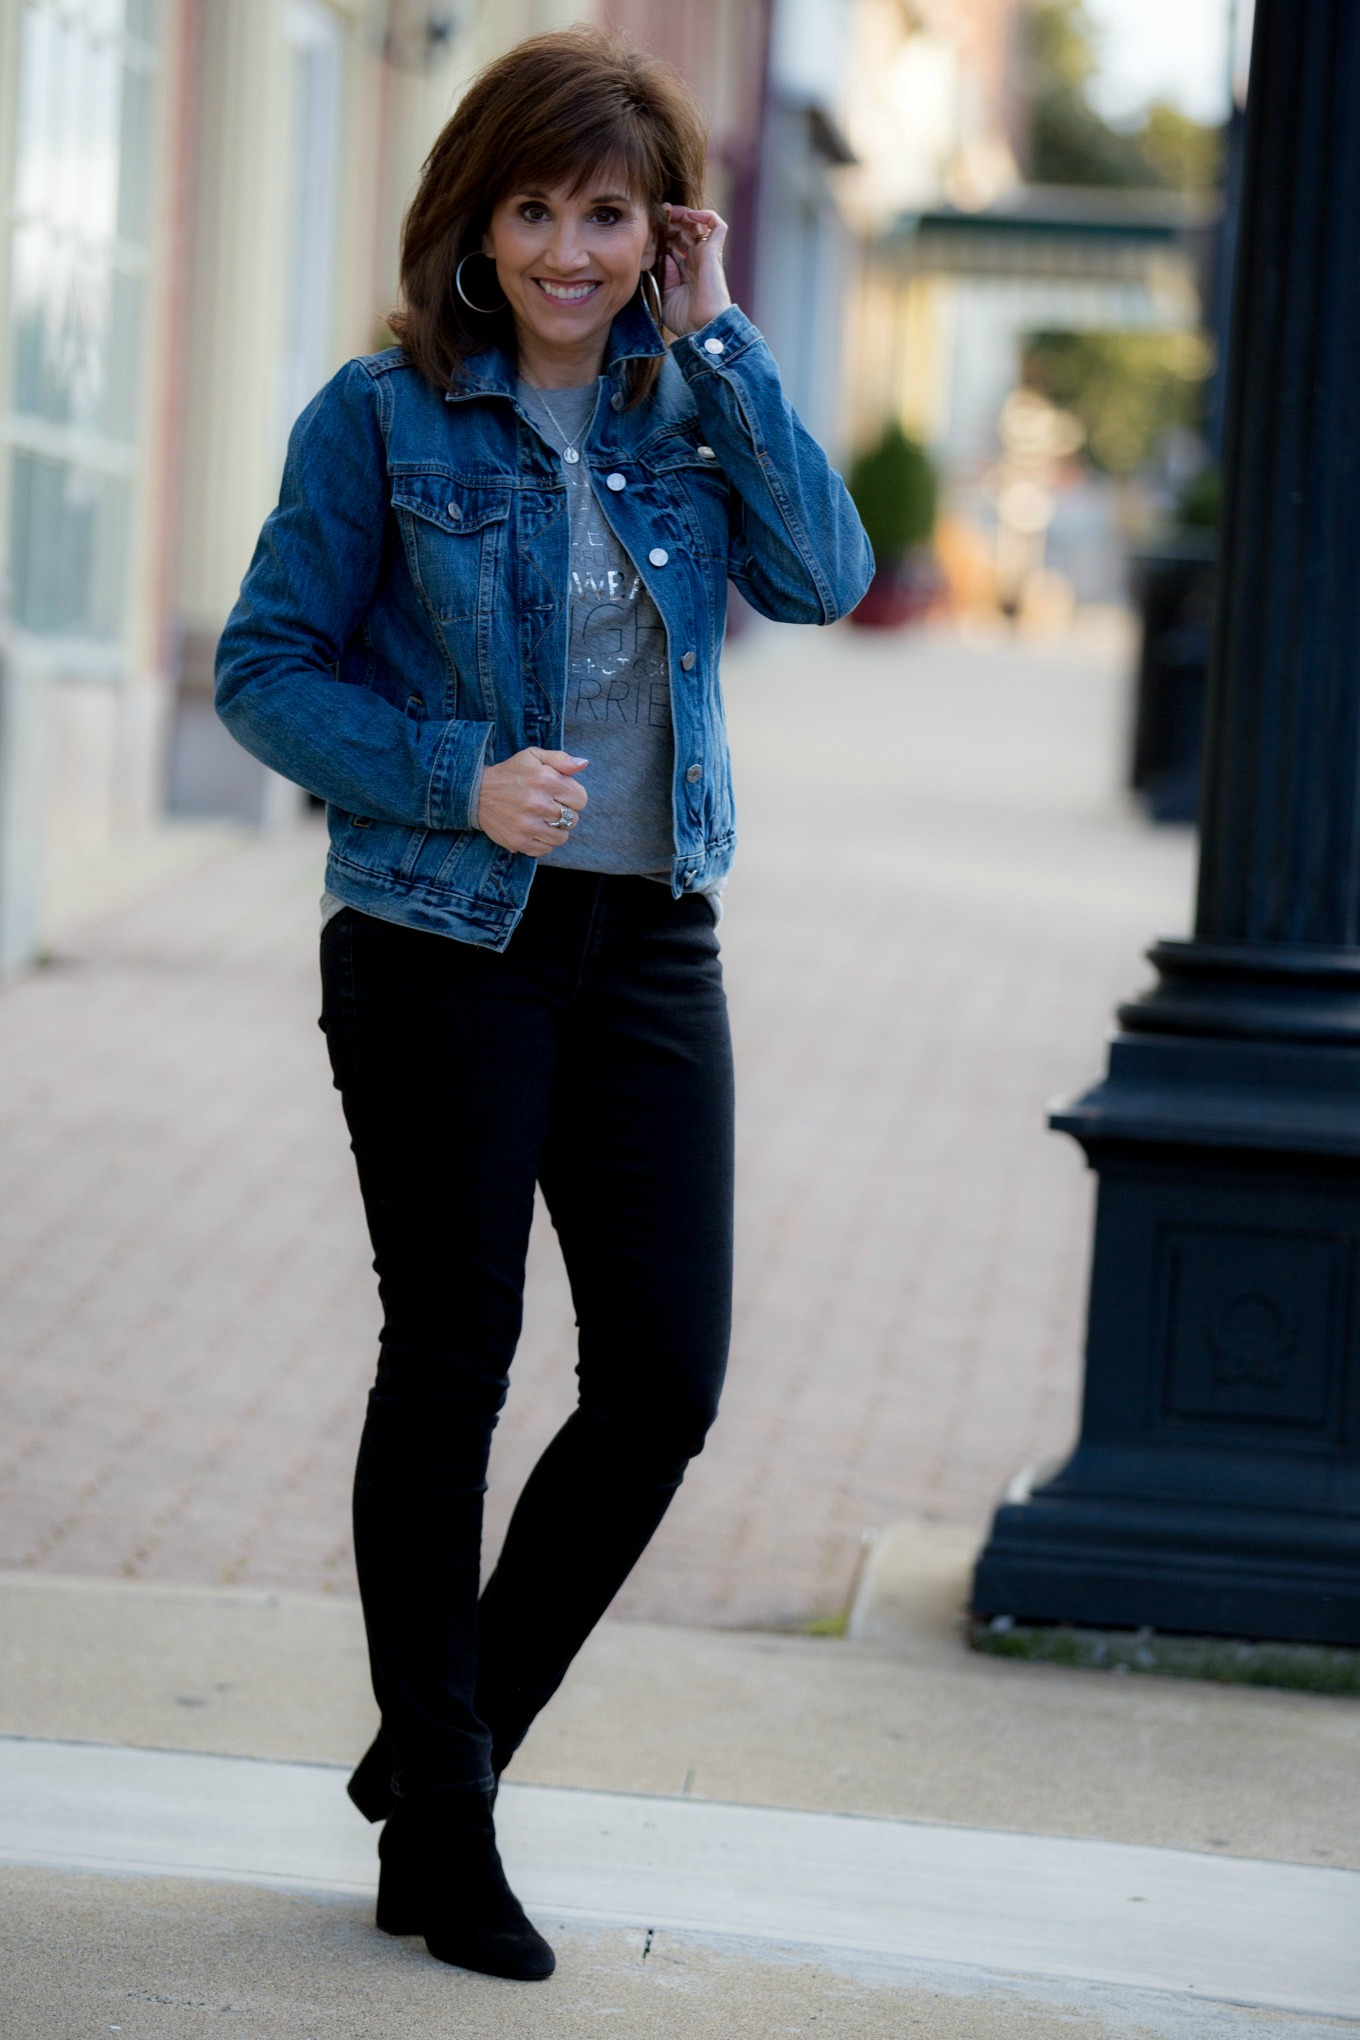 Casual Outfit Formula: Graphic Tee + Denim Jacket + Black